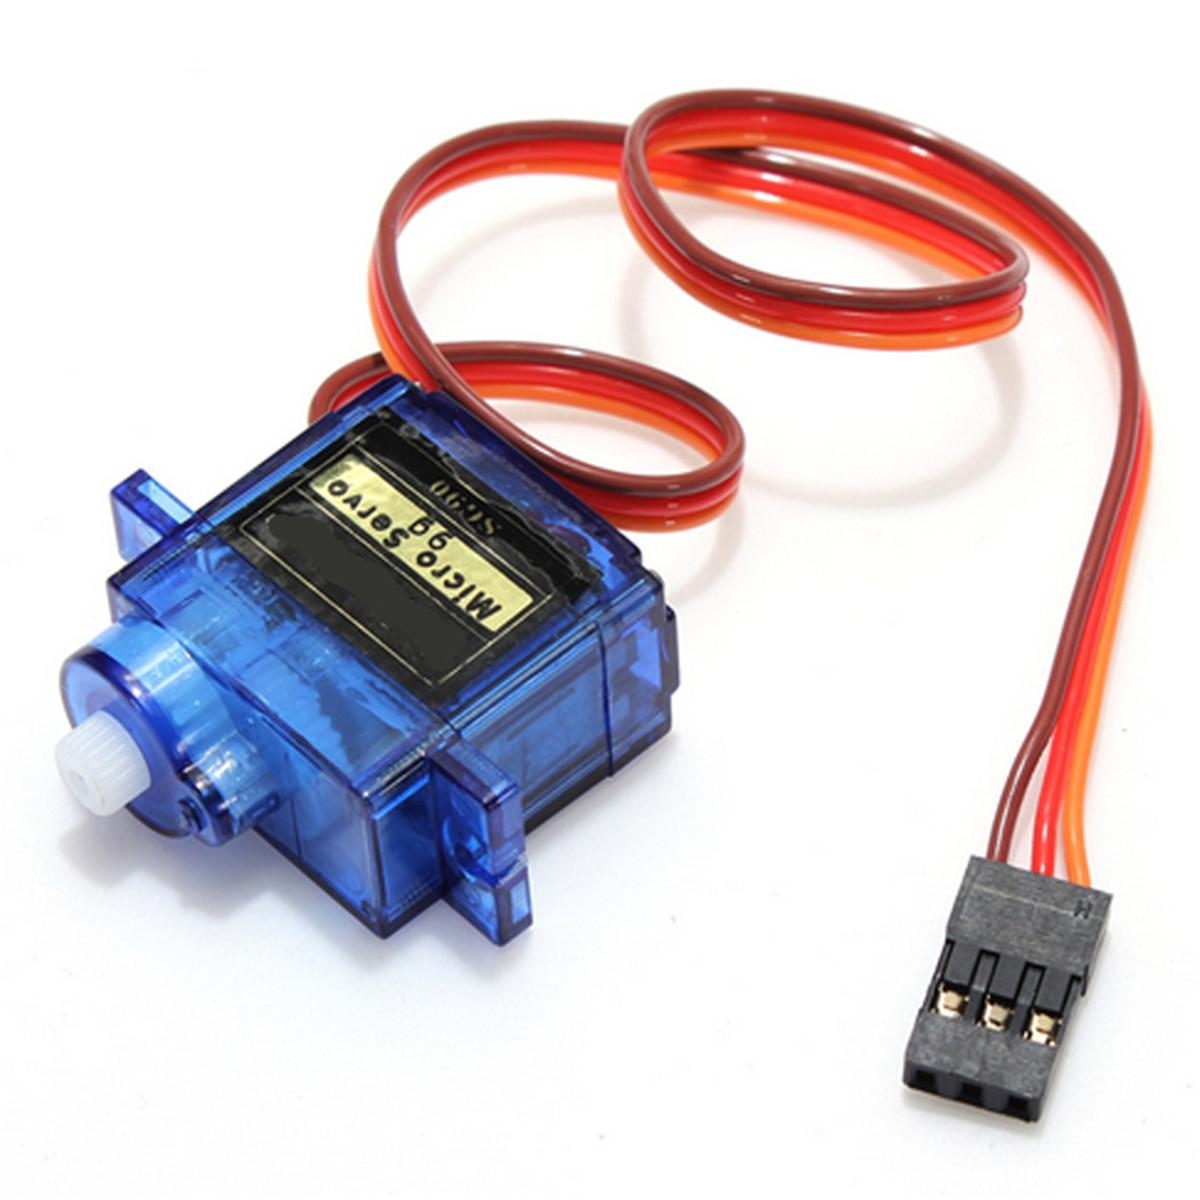 SG90 9G Micro Servo Motor For Robot 6CH RC Helicopter Airplane Controls for Arduino